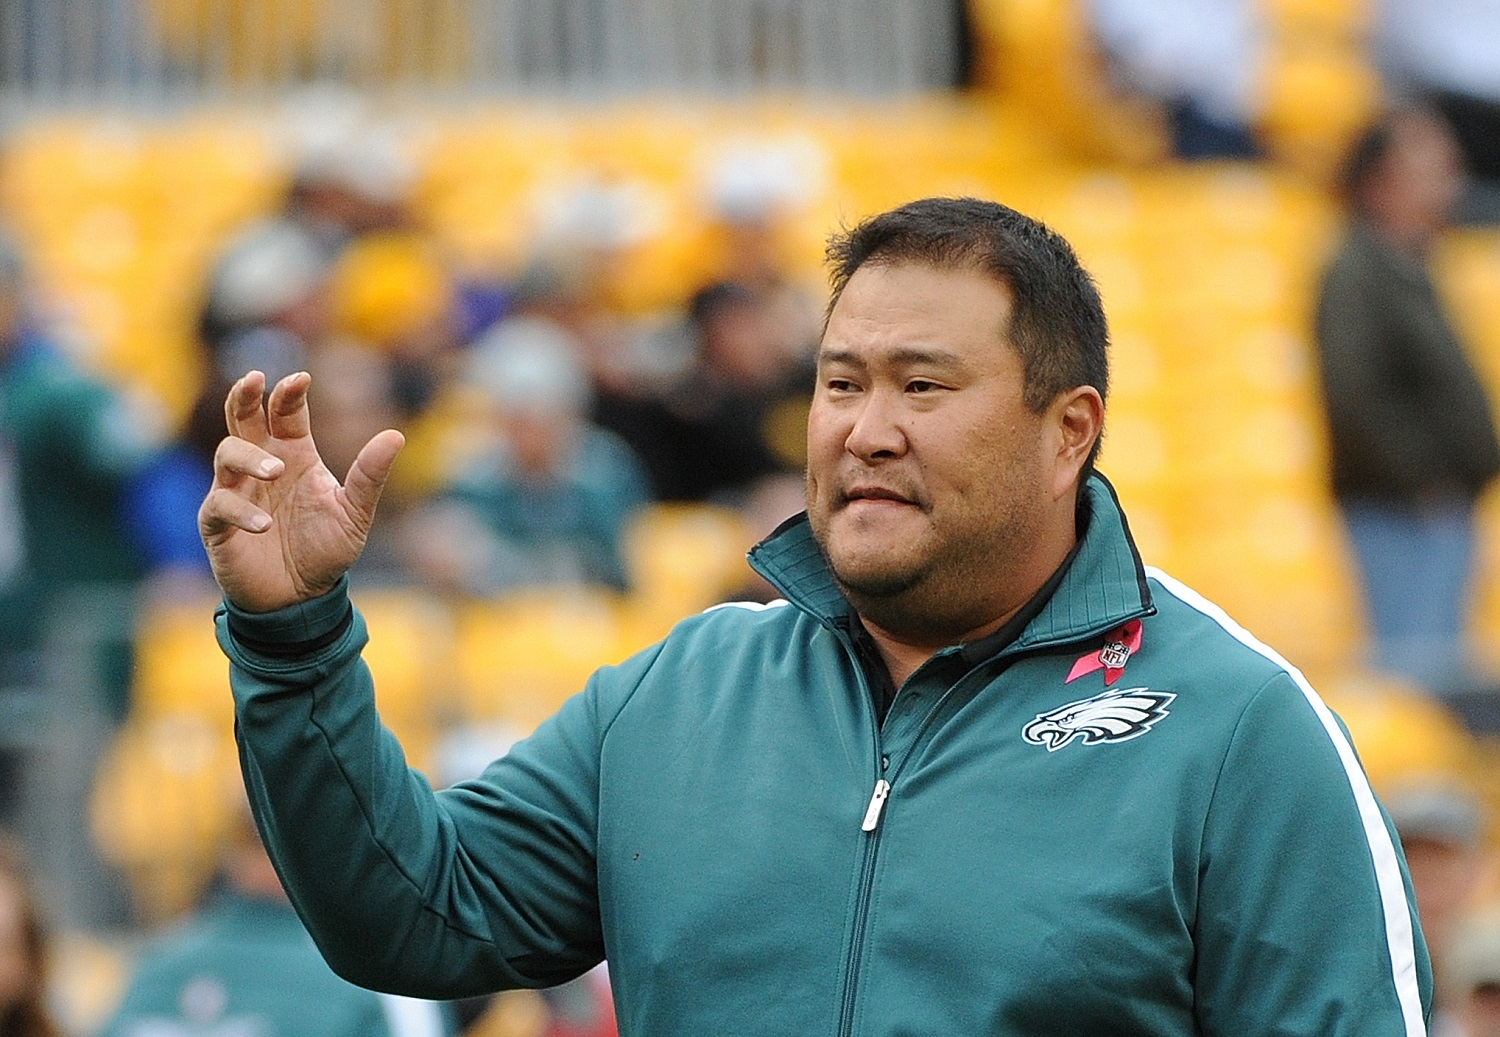 Being Asian Apparently Made Eugene Chung Too White To Coach an NFL Team